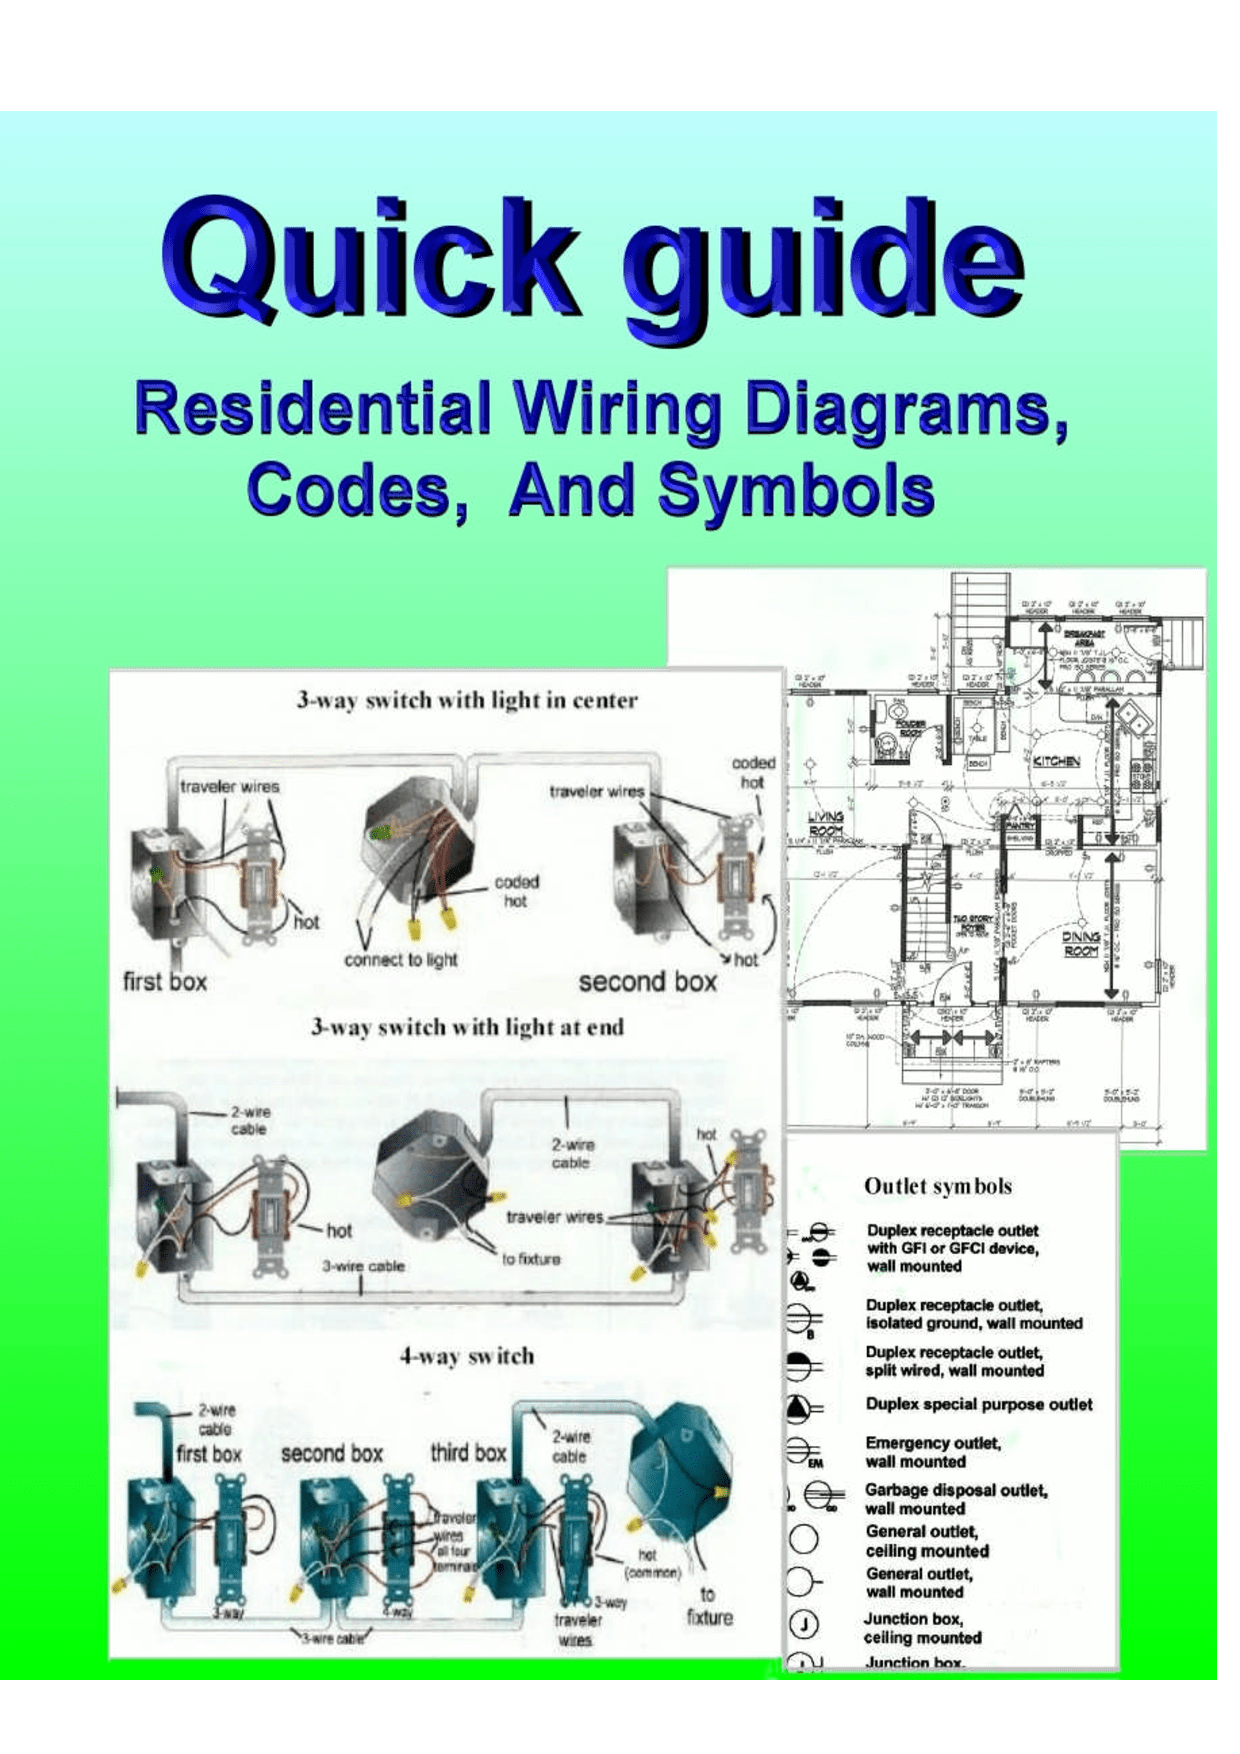 Home Electrical Wiring Diagrams Visit the following link